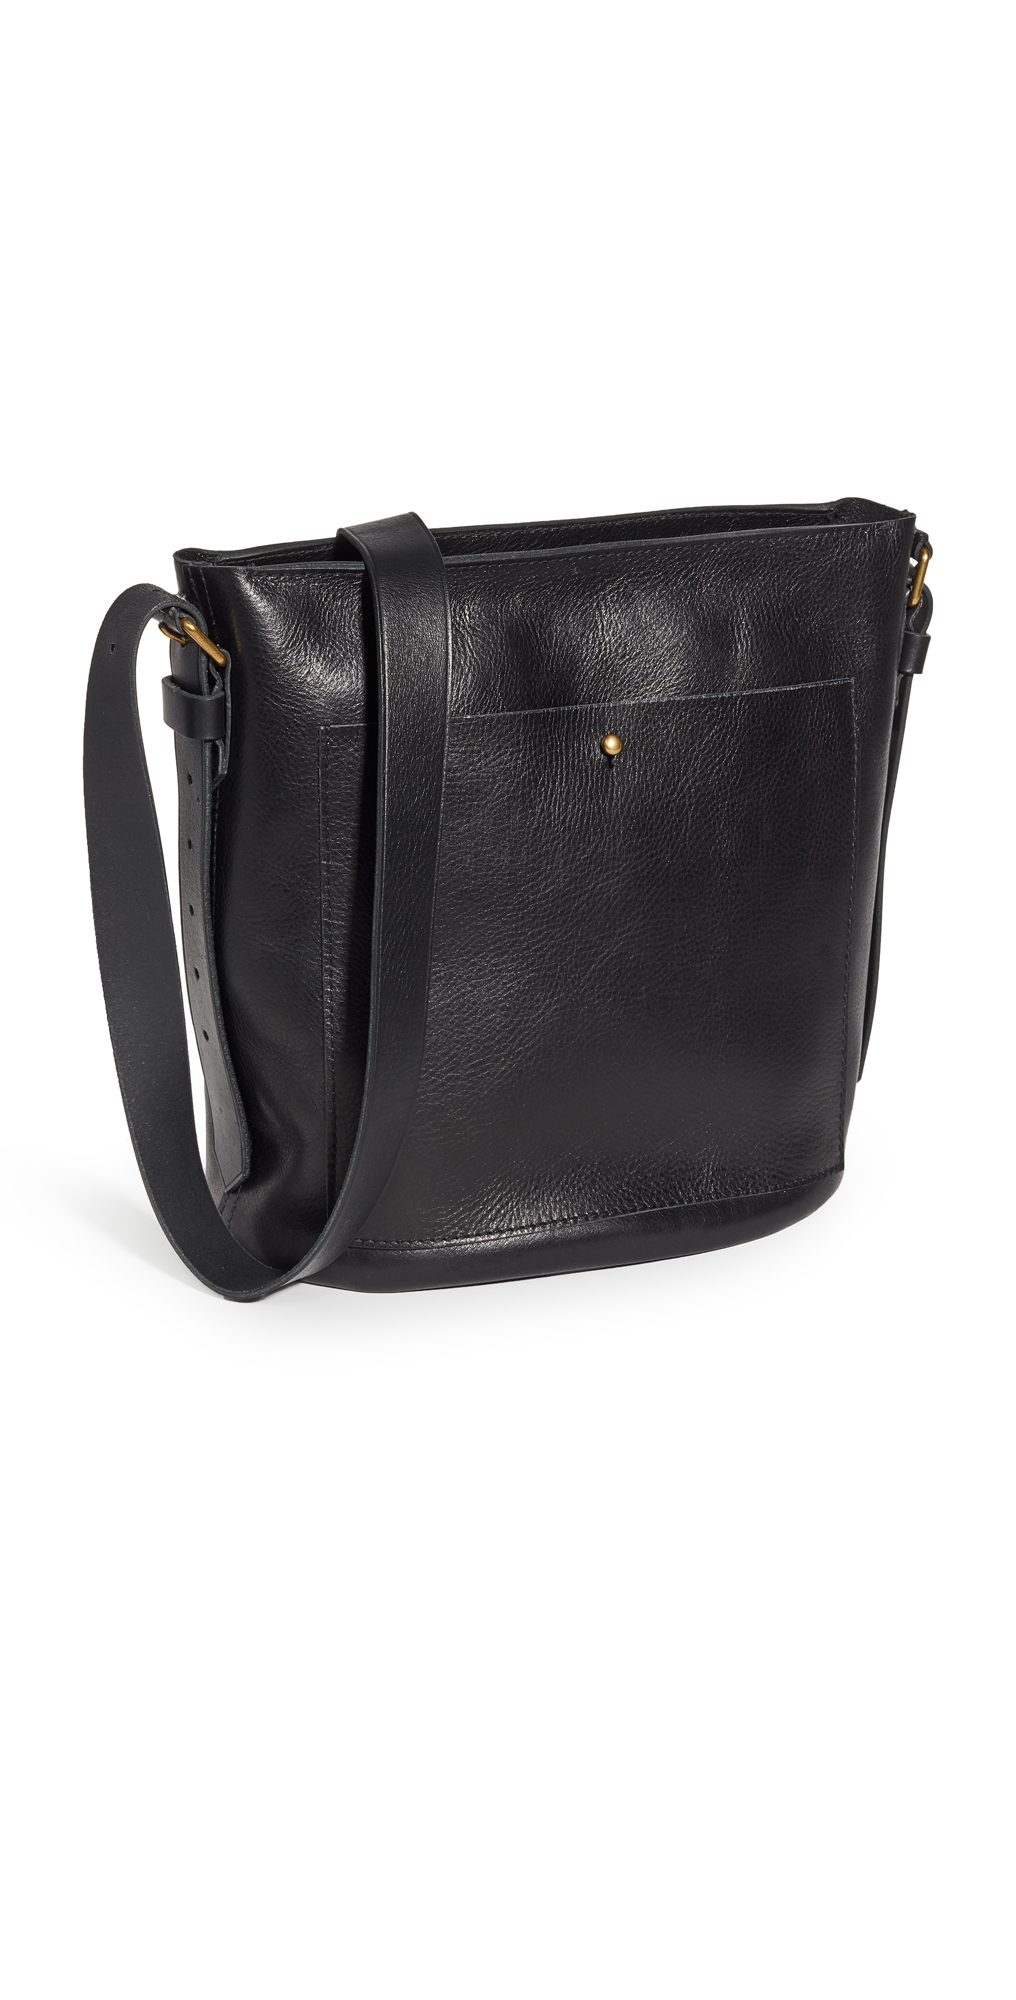 Madewell Transport Bucket Bag